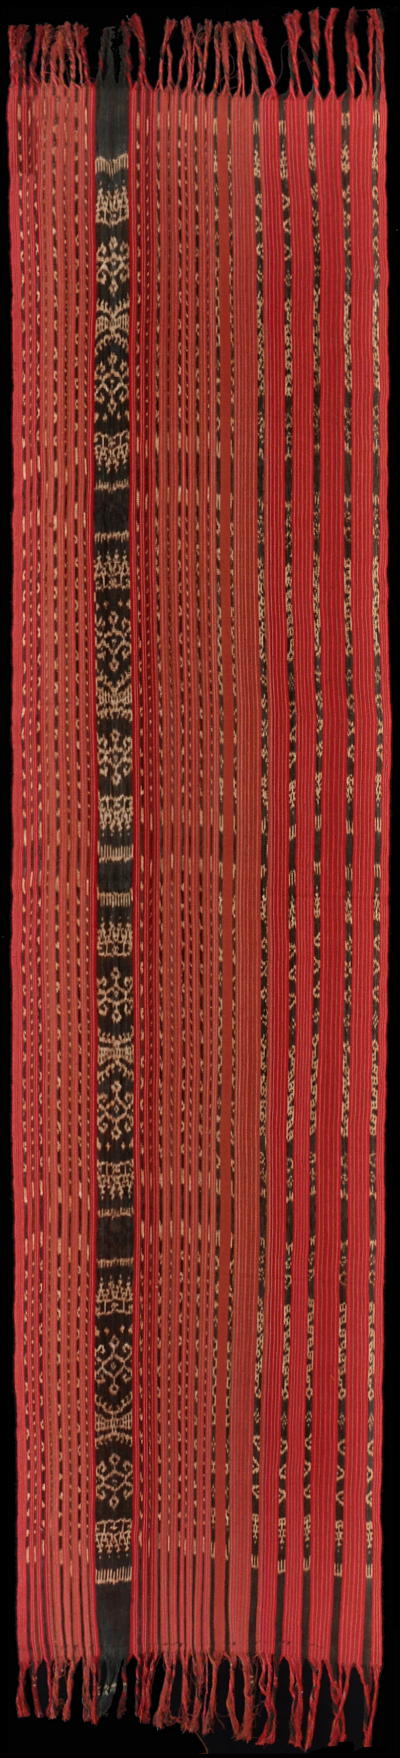 Ikat from Leti, Moluccas, Indonesia